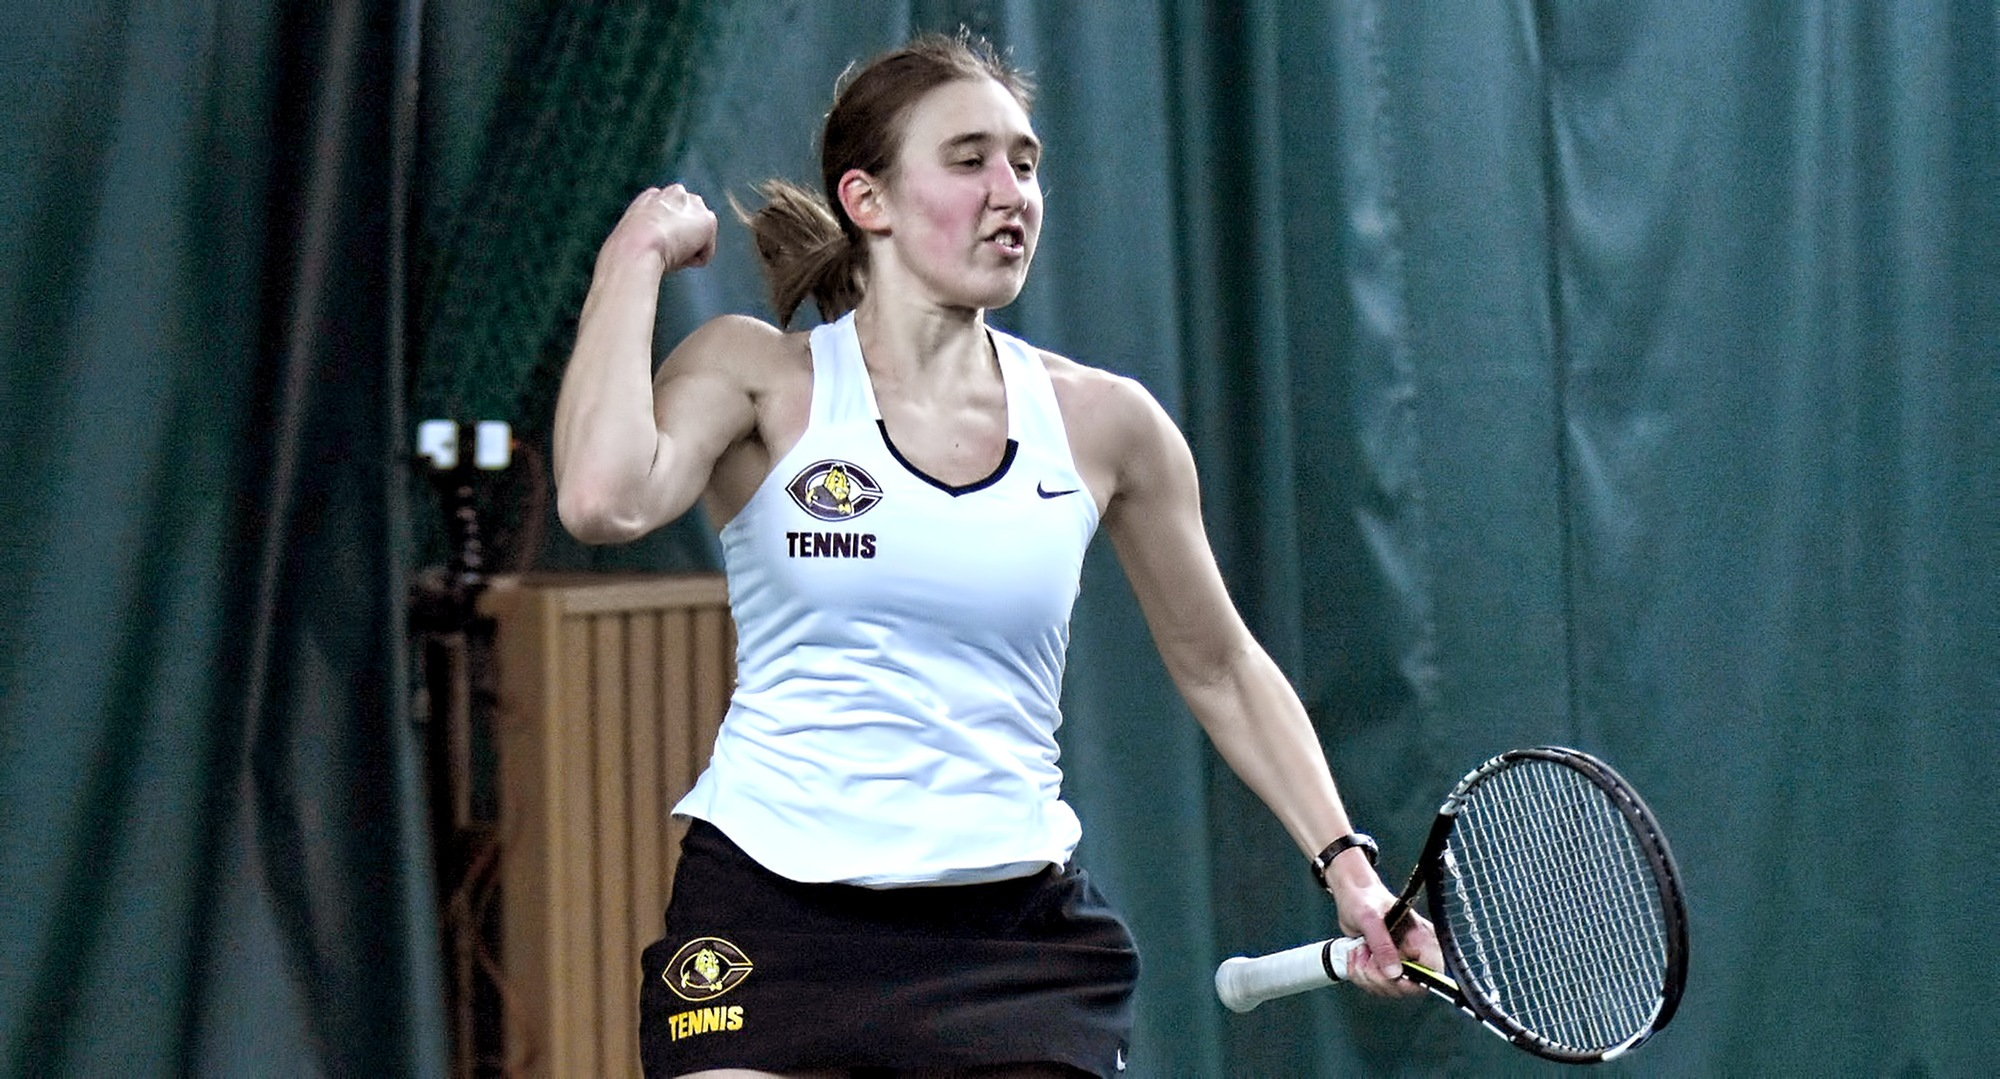 Senior Lisa Neumann went 3-1 in singles play and was 4-1 in doubles with partner Rachel Saxen.